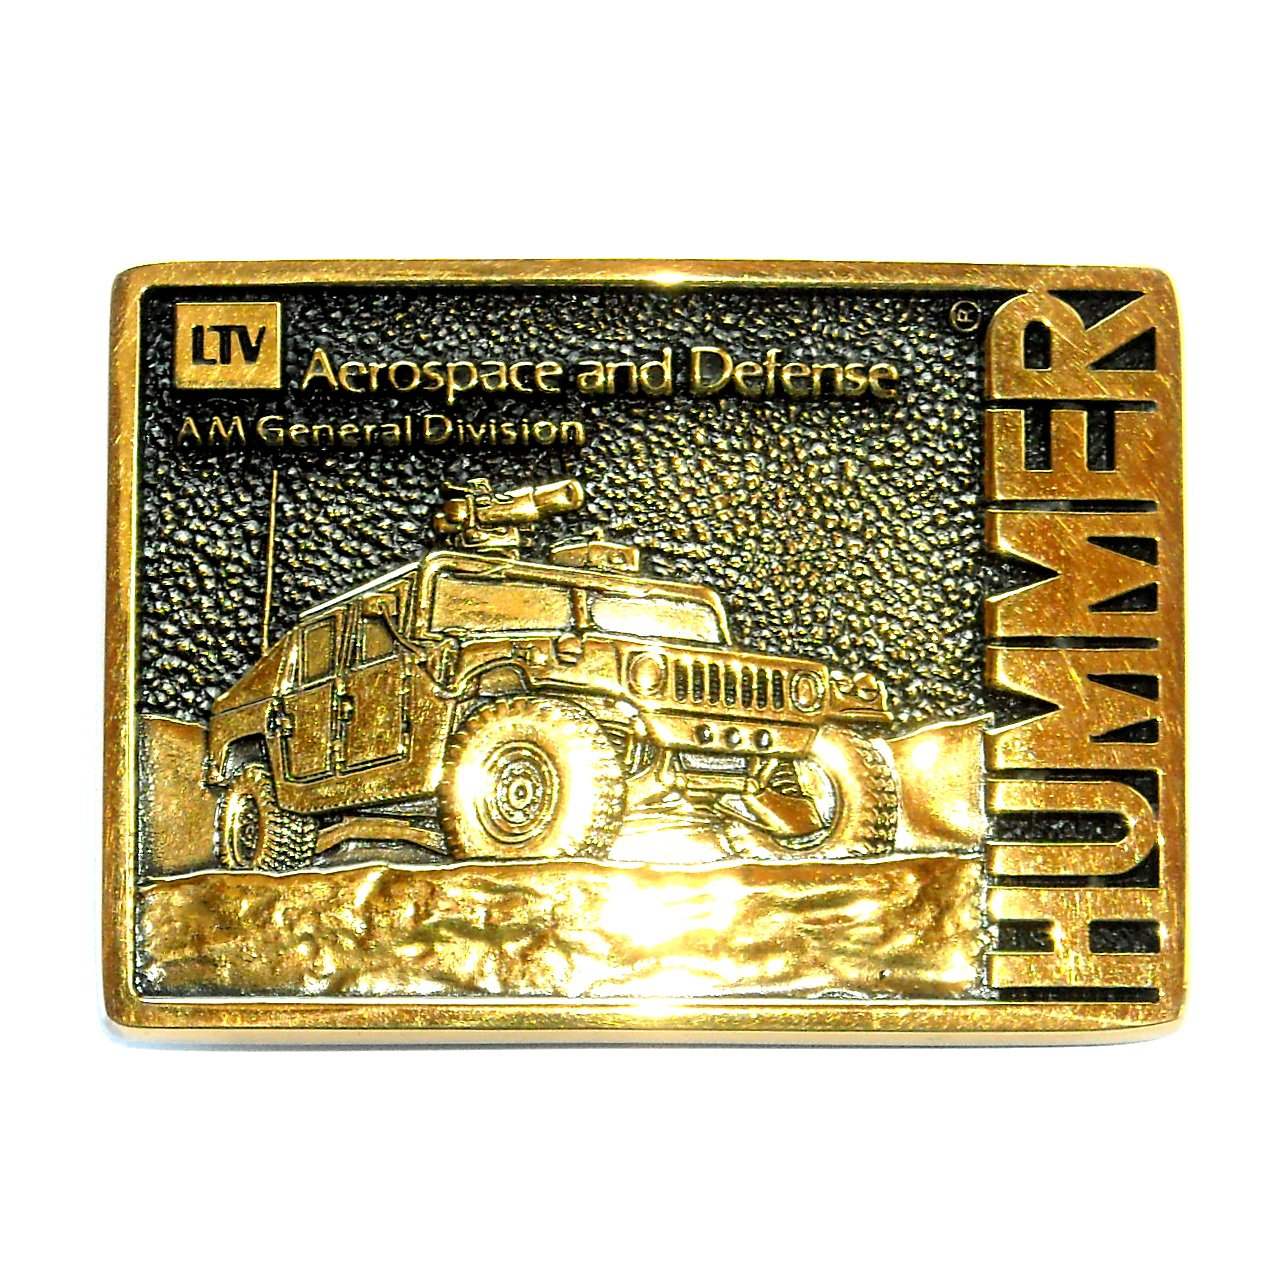 Hummer LTV Aerospace Defense BTS Solid Brass Belt Buckle